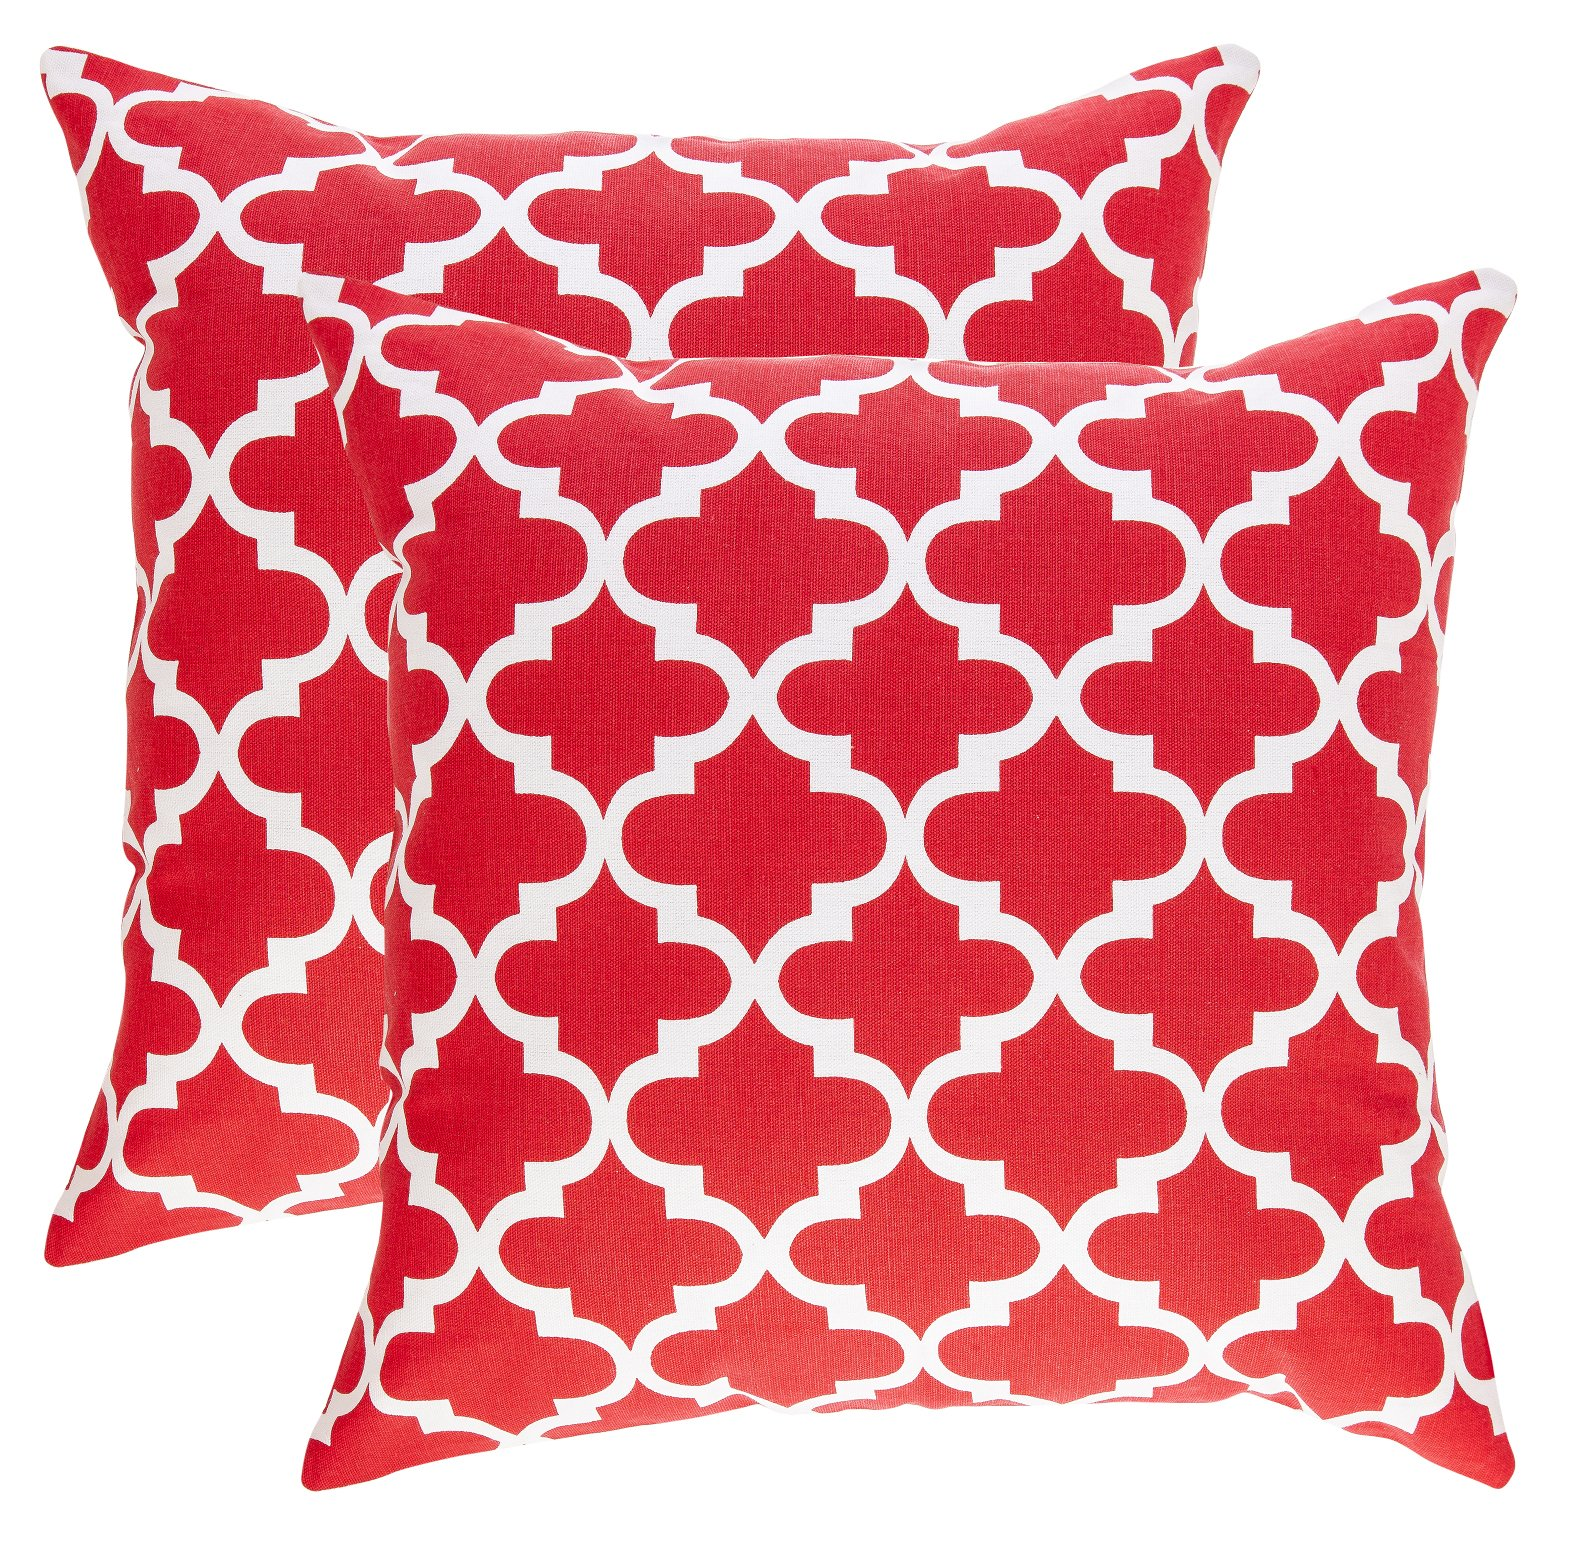 Easy Pillow Patterns Free Patterns